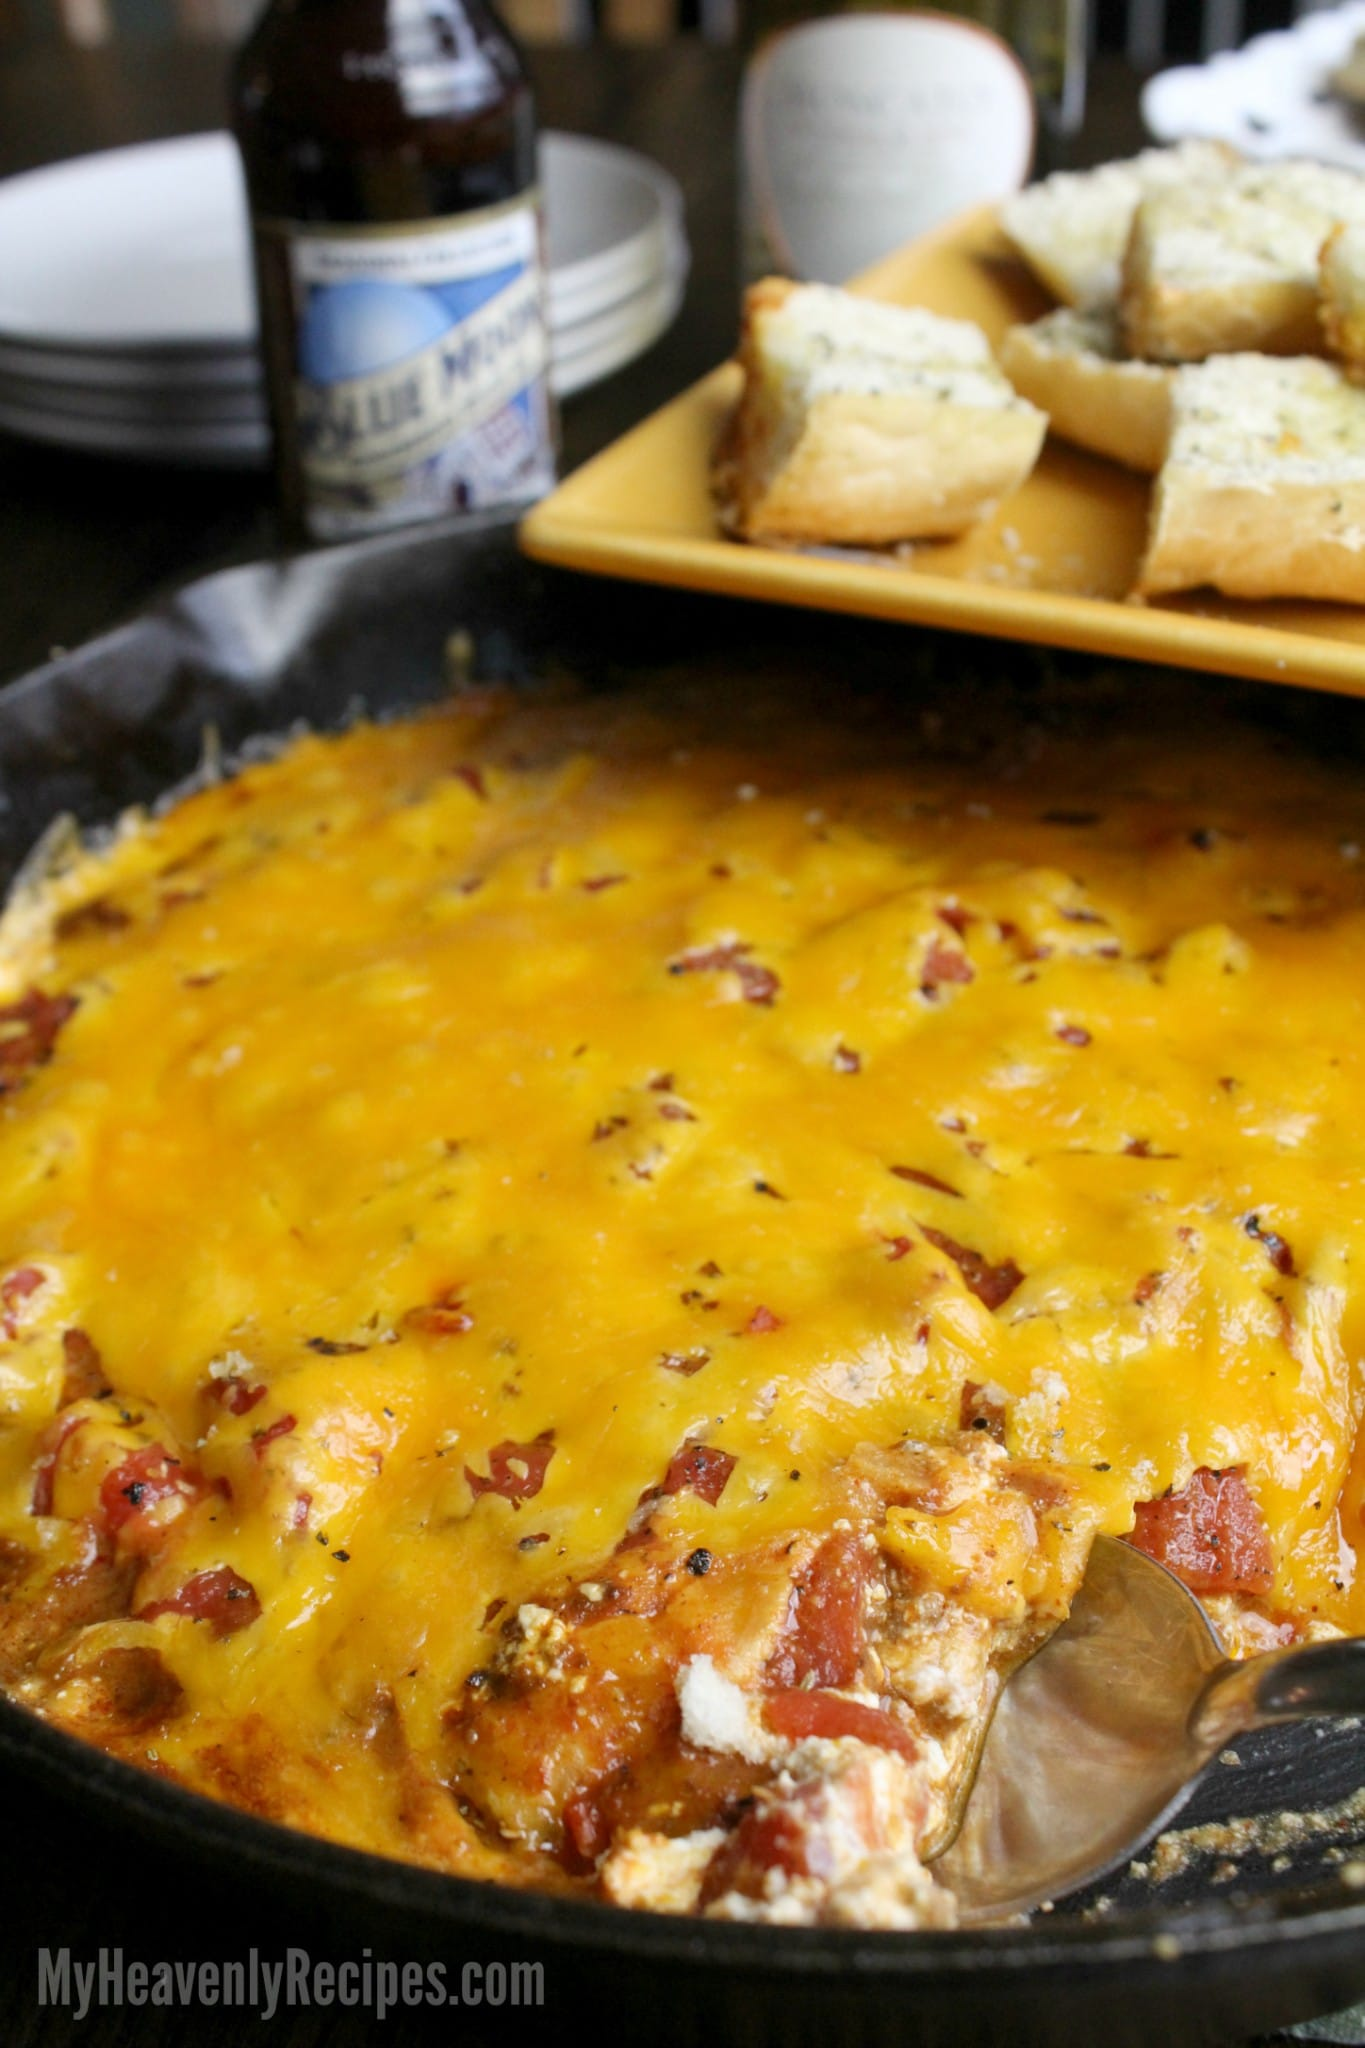 Chili Dip with Garlic Bread Vertical